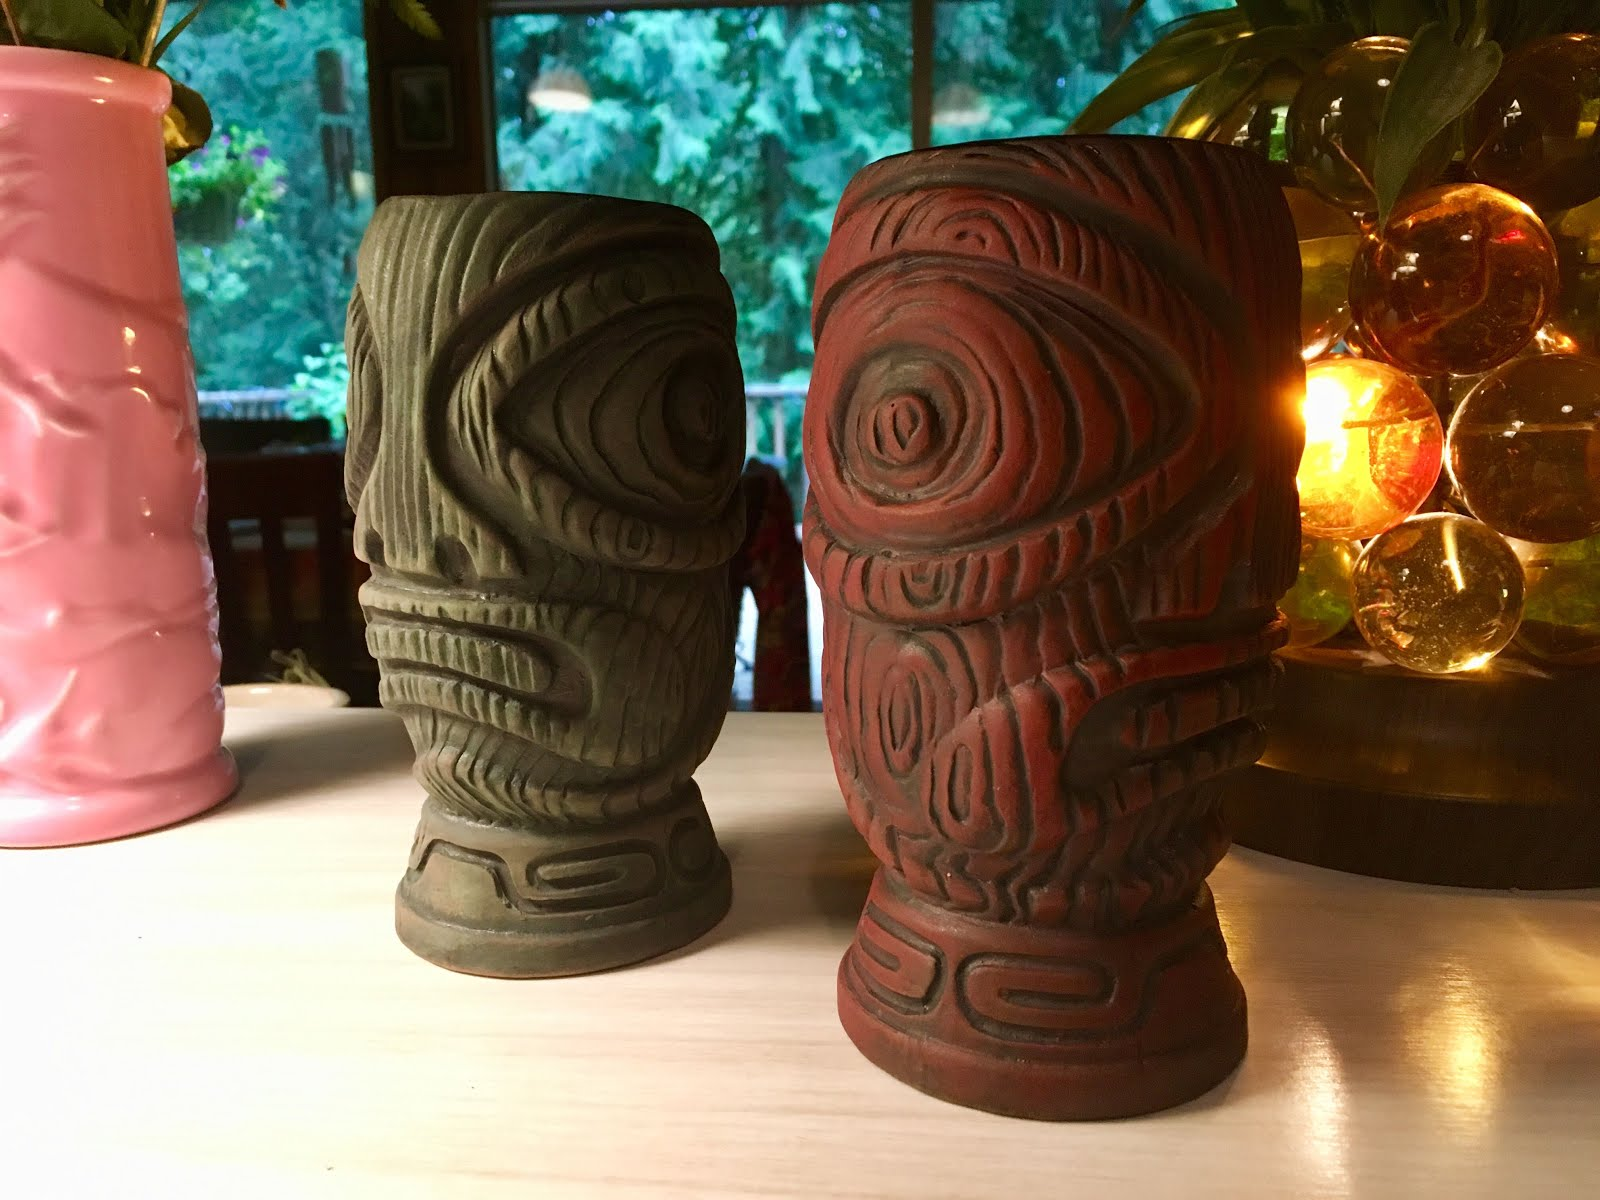 These mugs were made in collaboration with Michael Sbicca/Jungle Modern Ceramics.